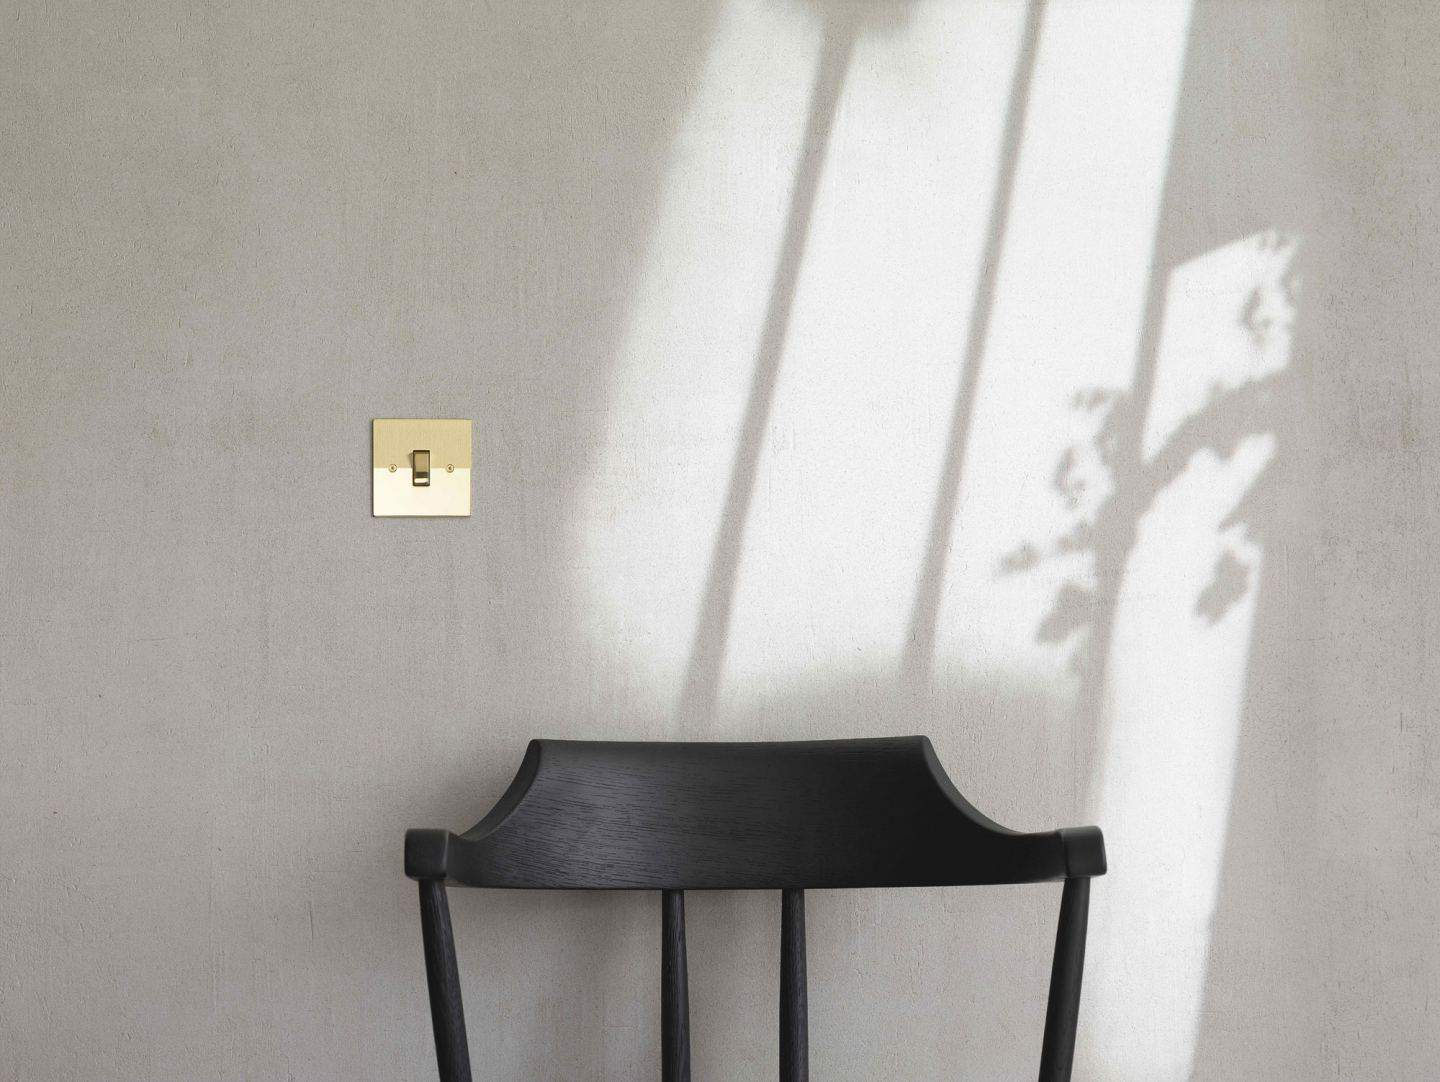 Designer switches and sockets by Kelly Hoppen for Focus SB. A gold light switch on a grey wall above a black wooden chair.